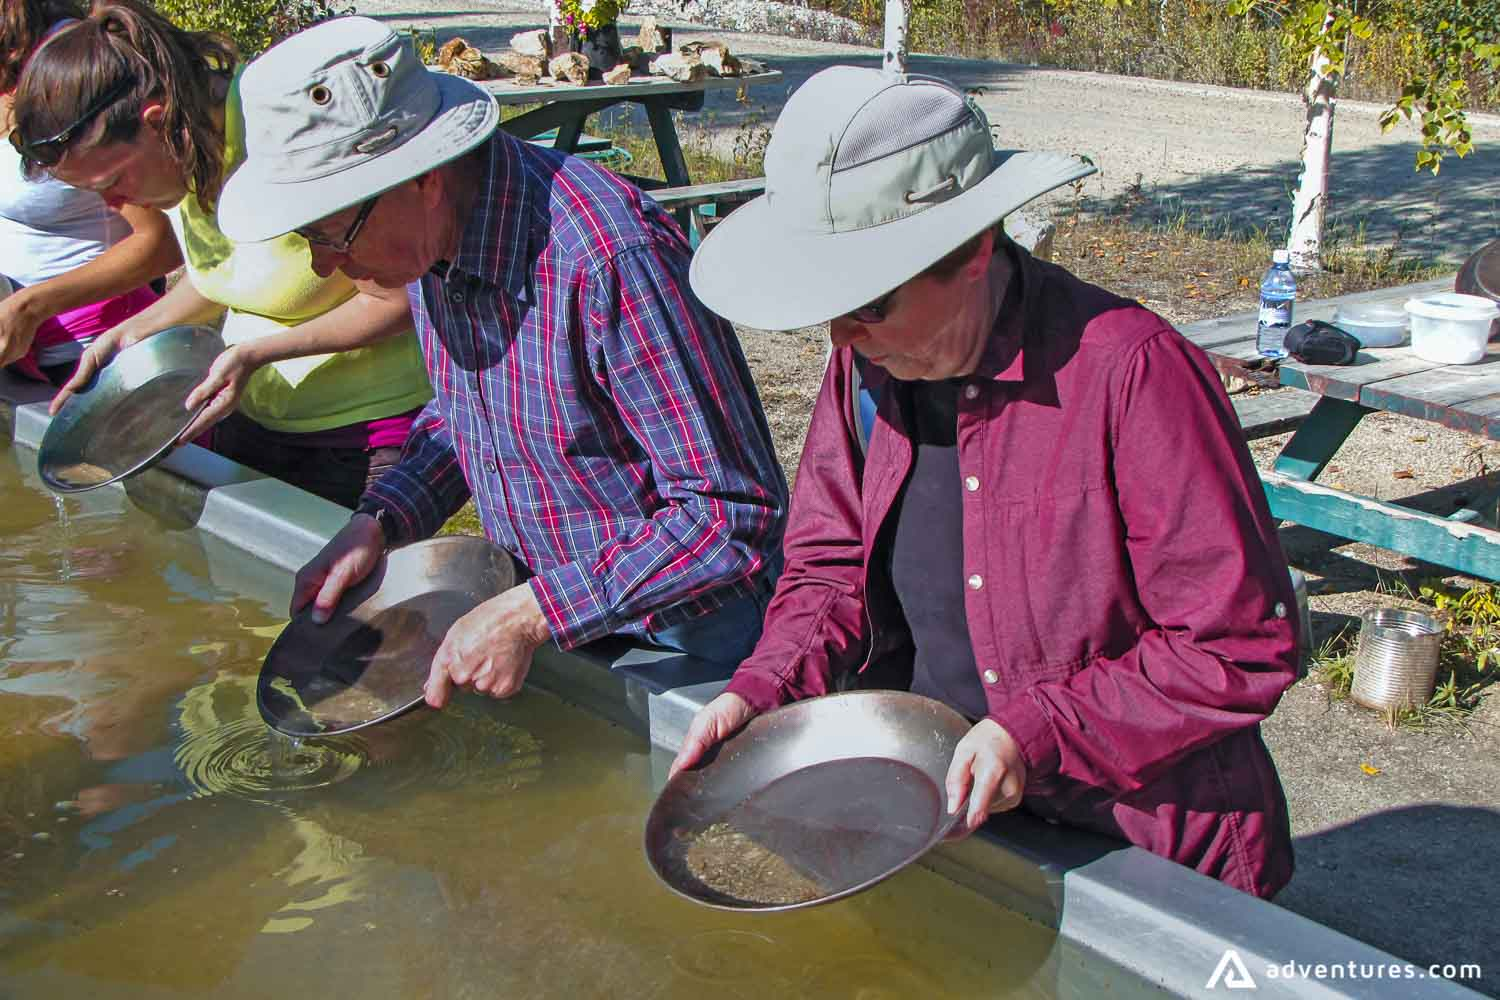 People searching for gold in Canada